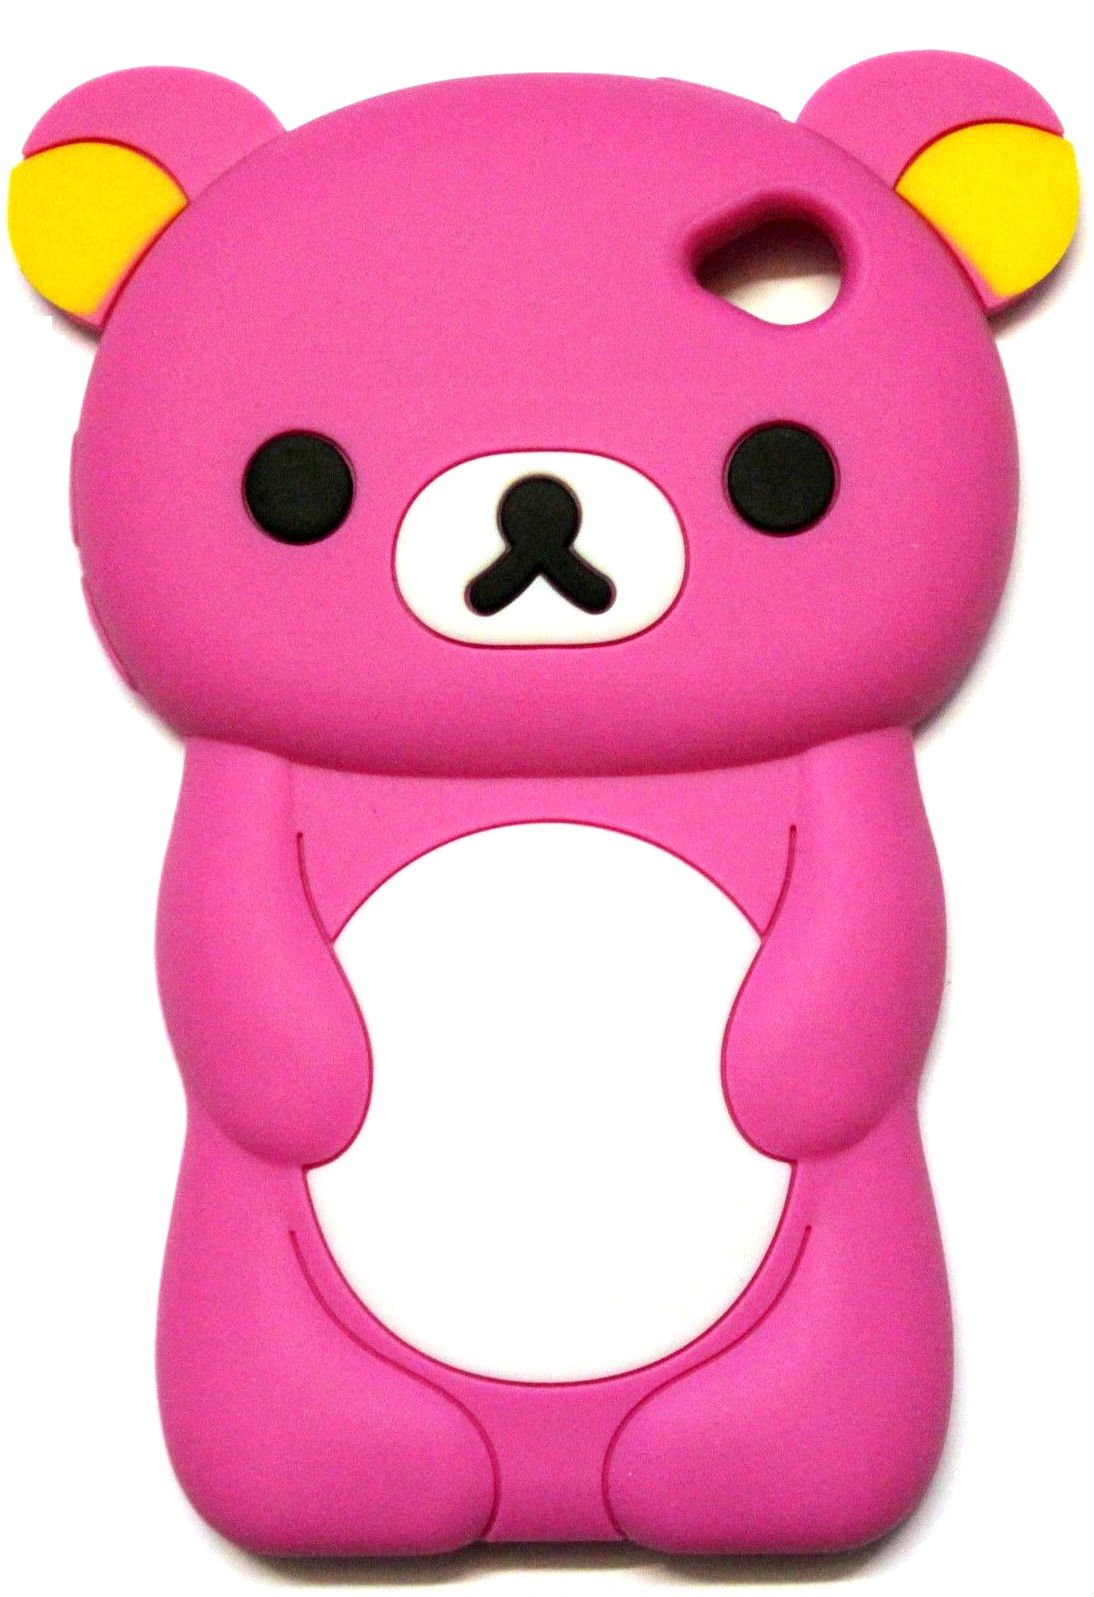 iTitan Strawberry Pink {Teddy Bear Animal} Soft and Smooth Silicone Cute 3D Fitted Bumper Gel Case for iPod 4 (4G) 4th Generation iTouch by Apple ''Durable and Slim Flexible Fashion Cover with Amazing and Creative Cartoon Design''